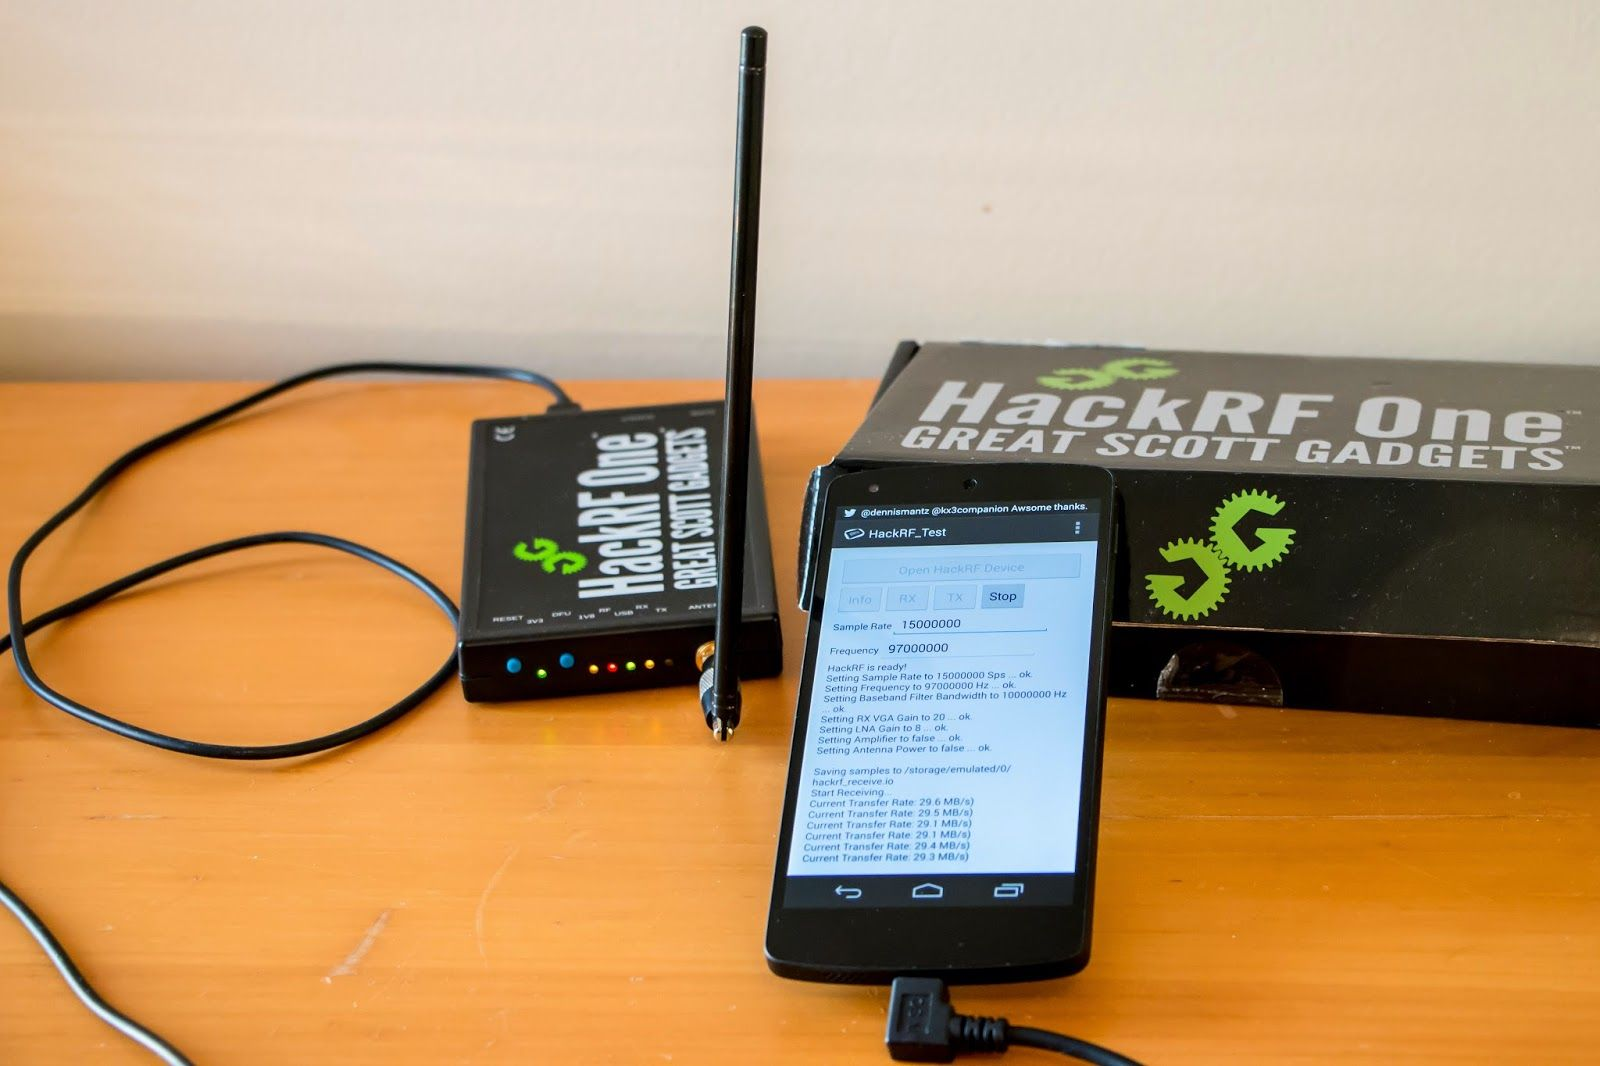 Mantz Tech Hackrf Android Using The With A Device Adafruit Kitbased Electronics Retailer And Promoter Of Hobbyist